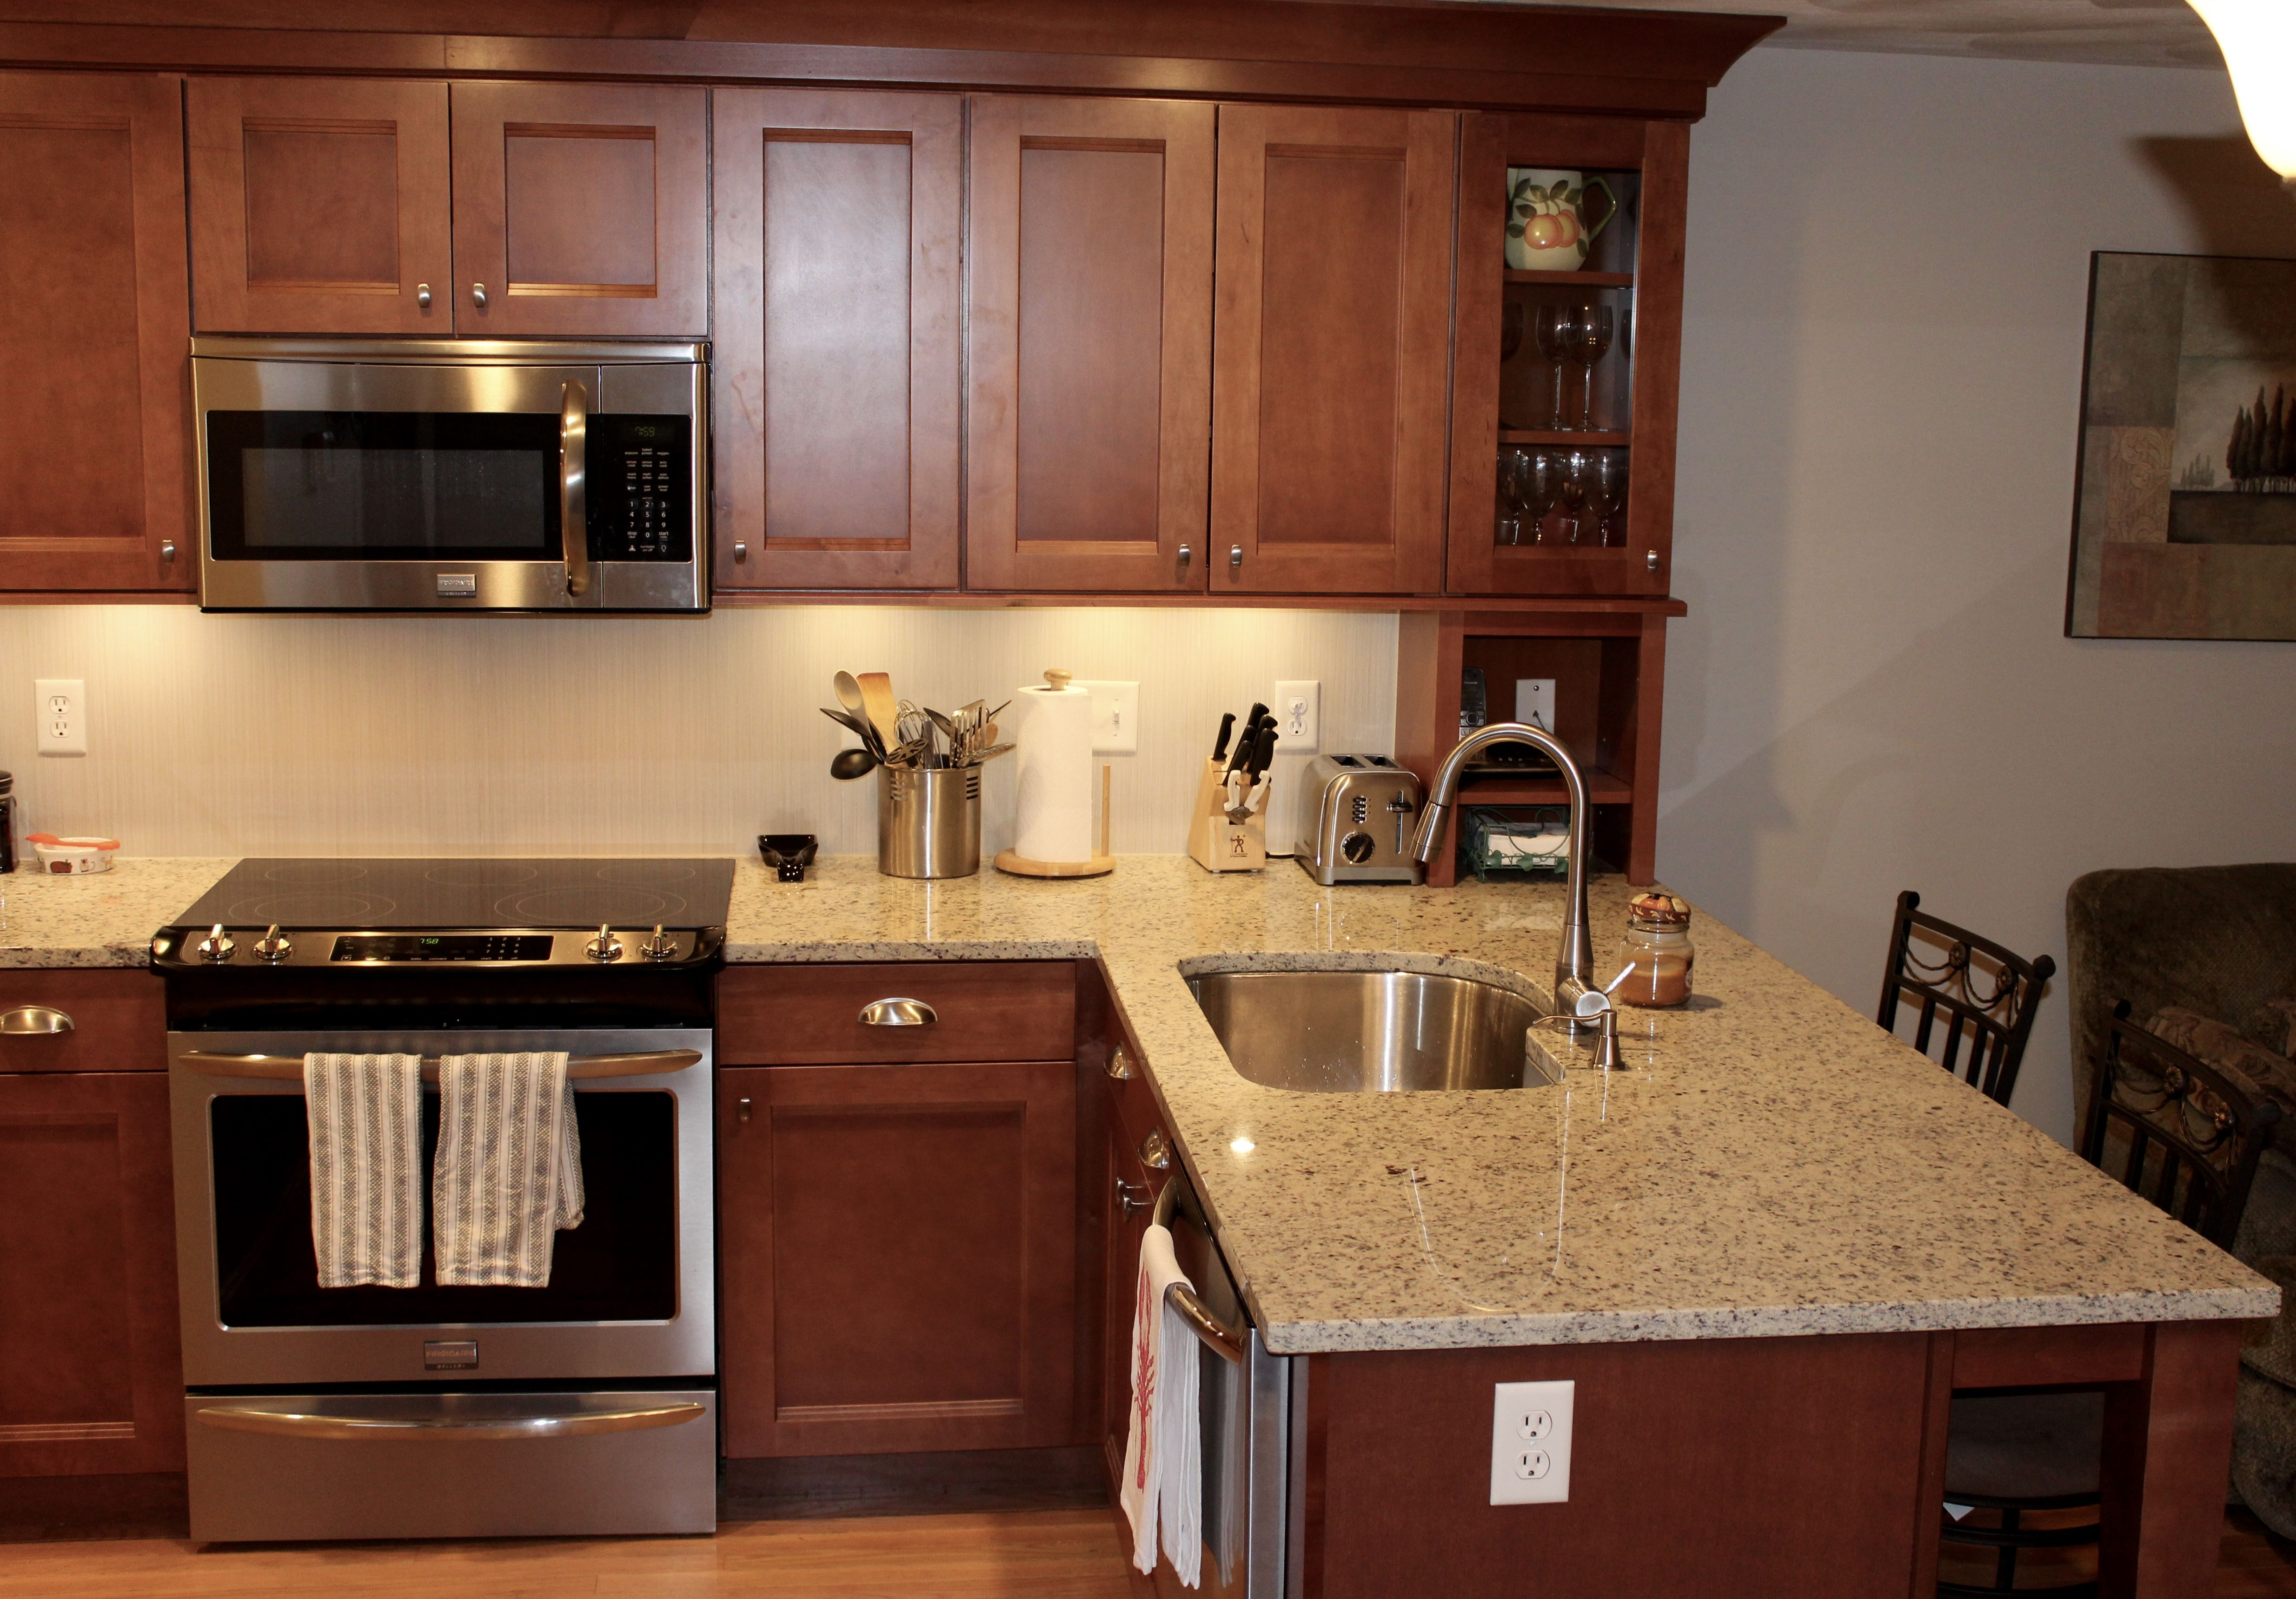 Shaker kitchen cabinets in maple cognac glass kitchen - Maple kitchen cabinets ...